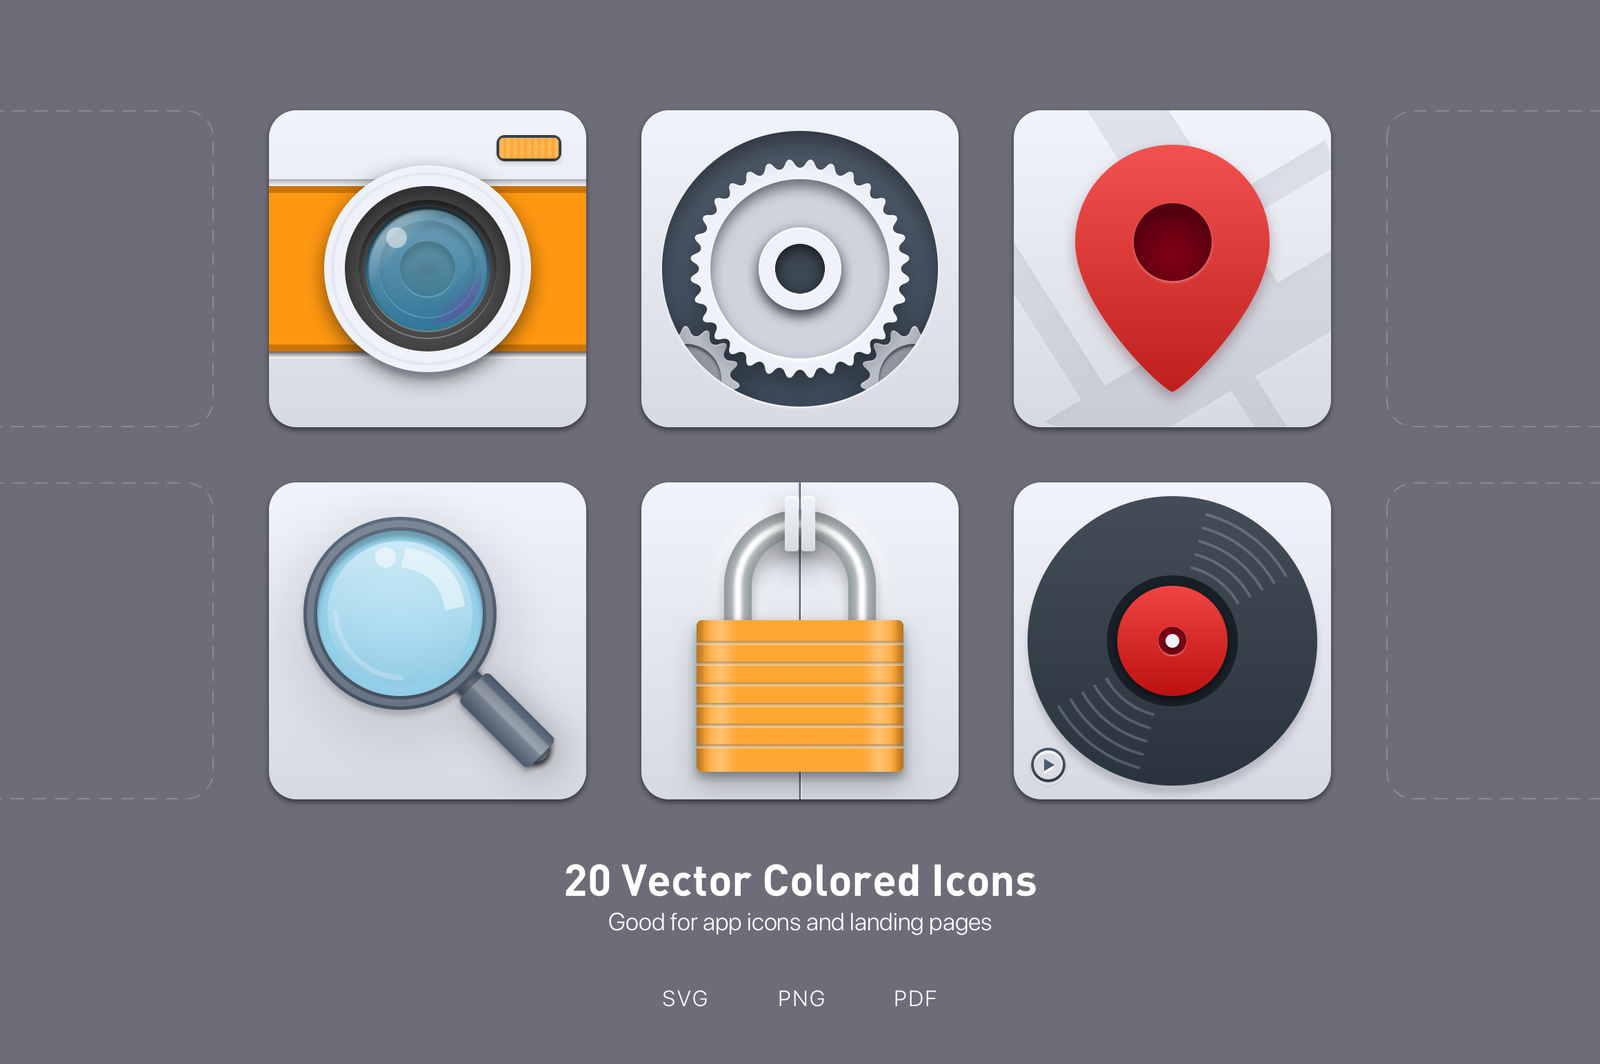 20 Vector Colored Icons